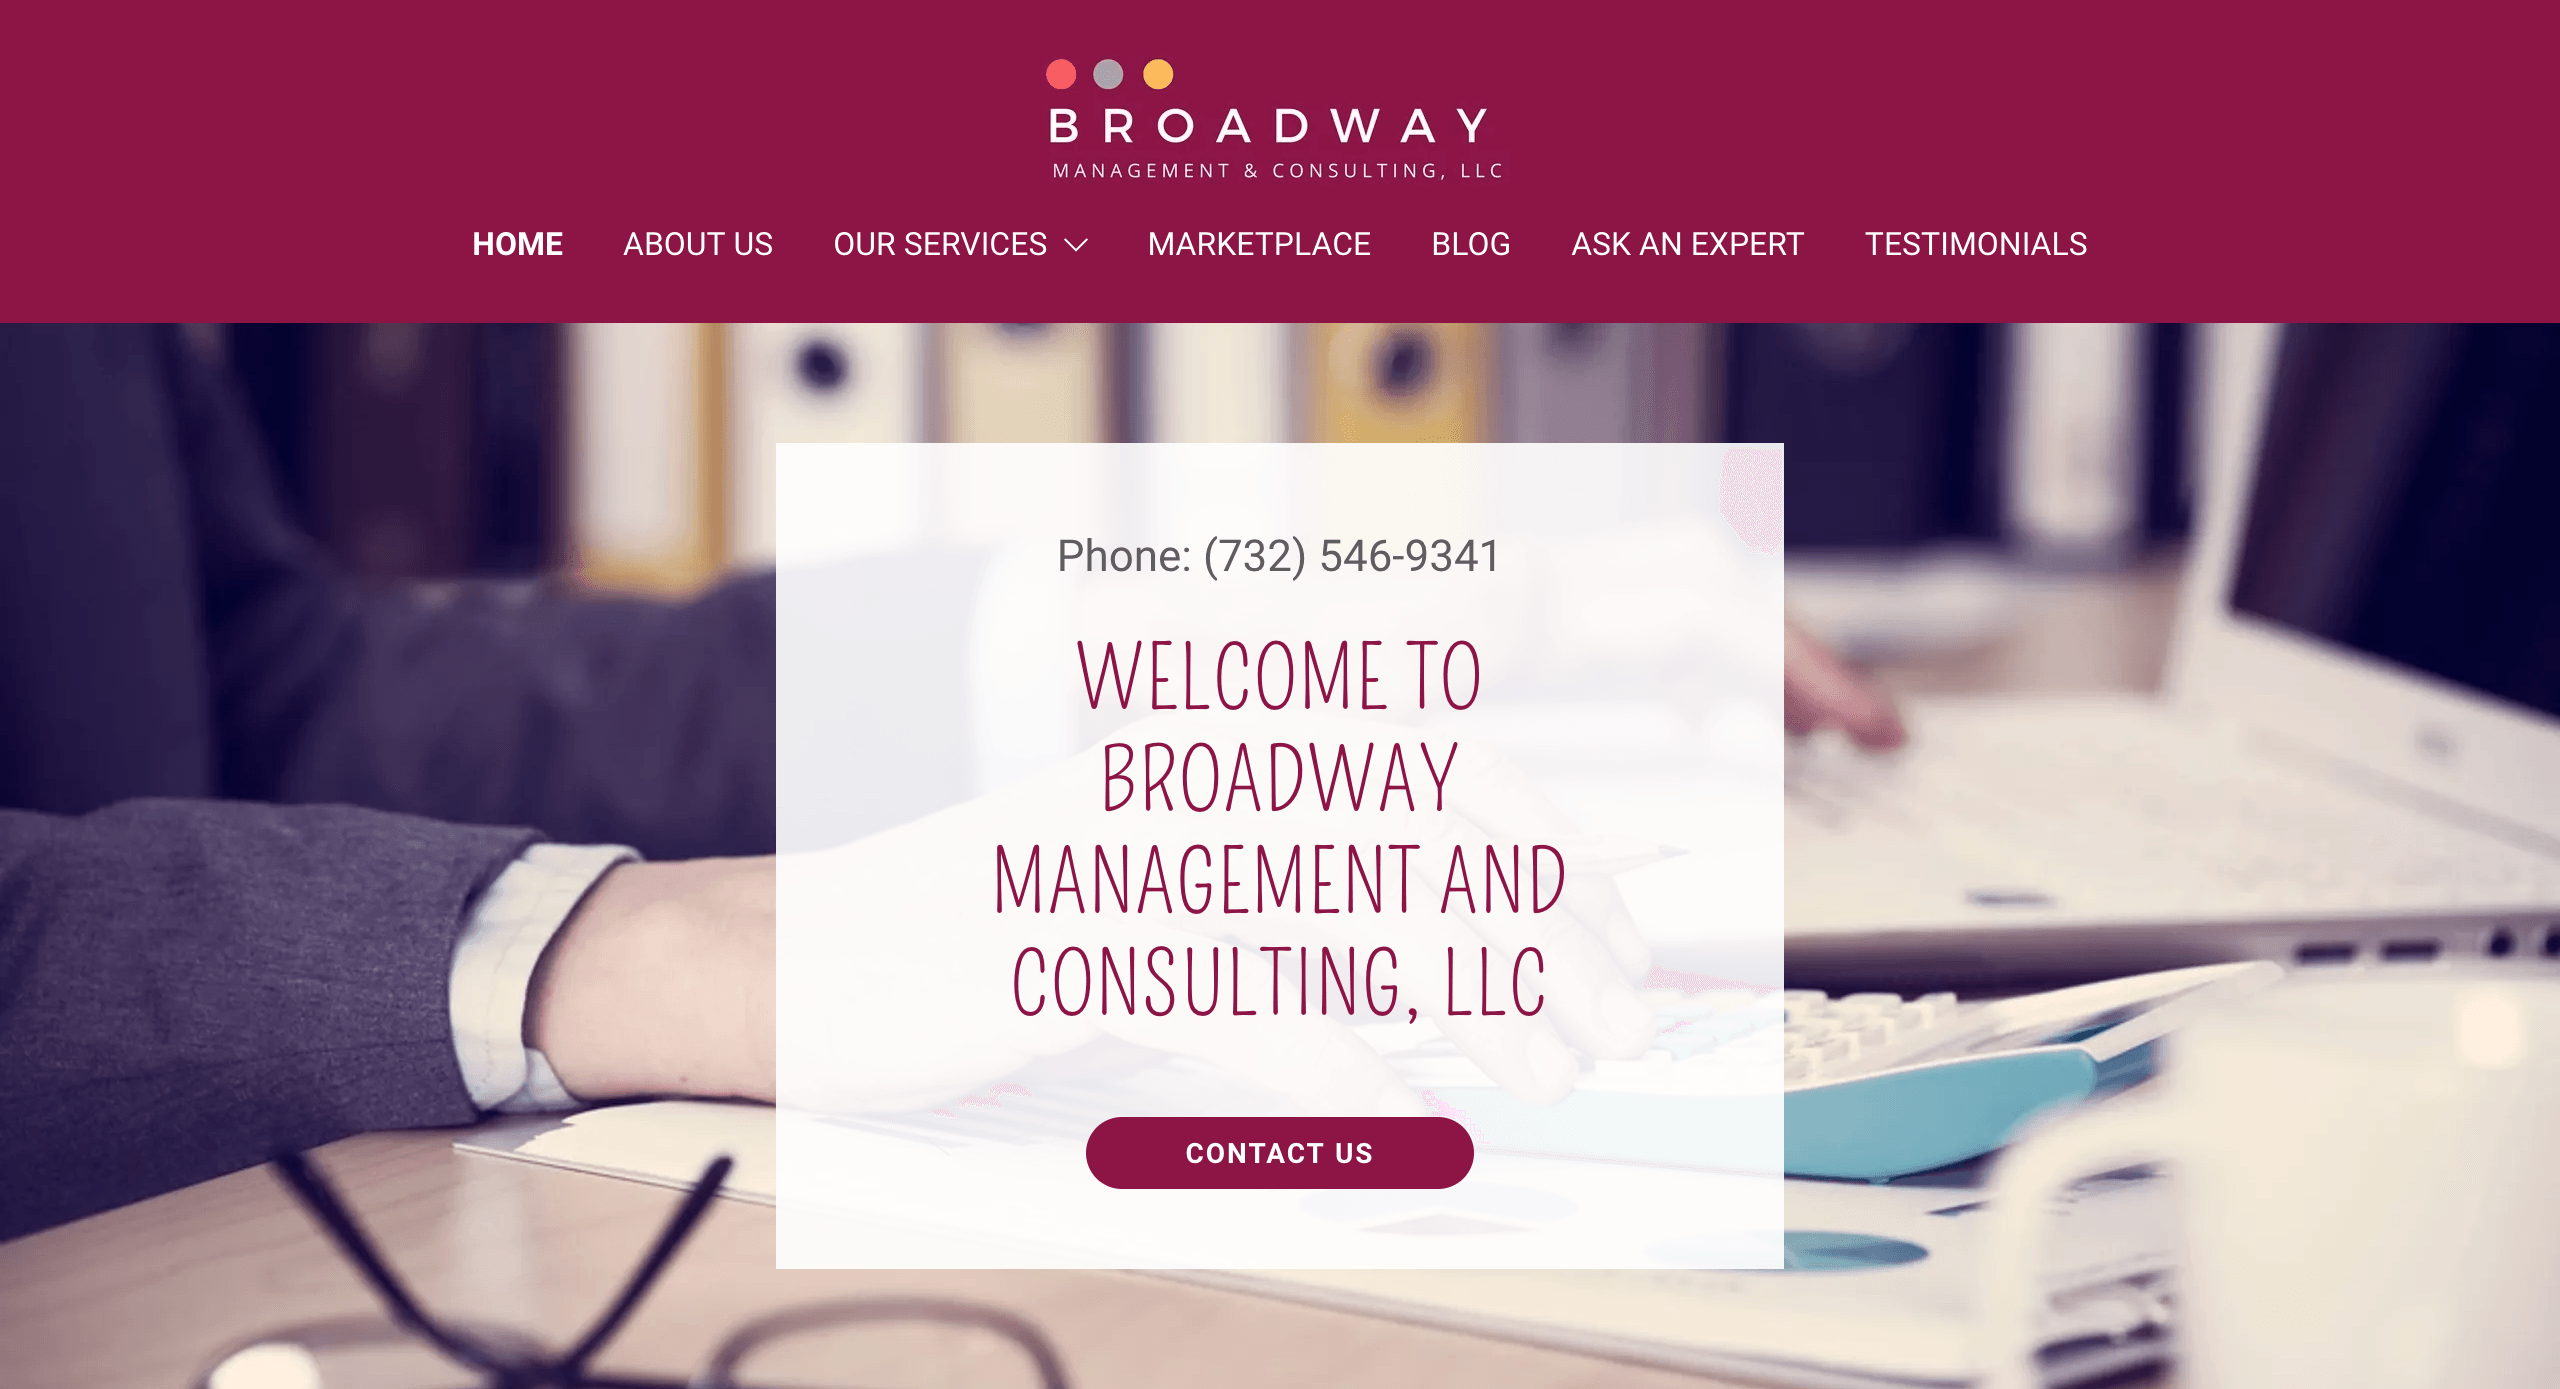 Broadway Management and Consulting LLC